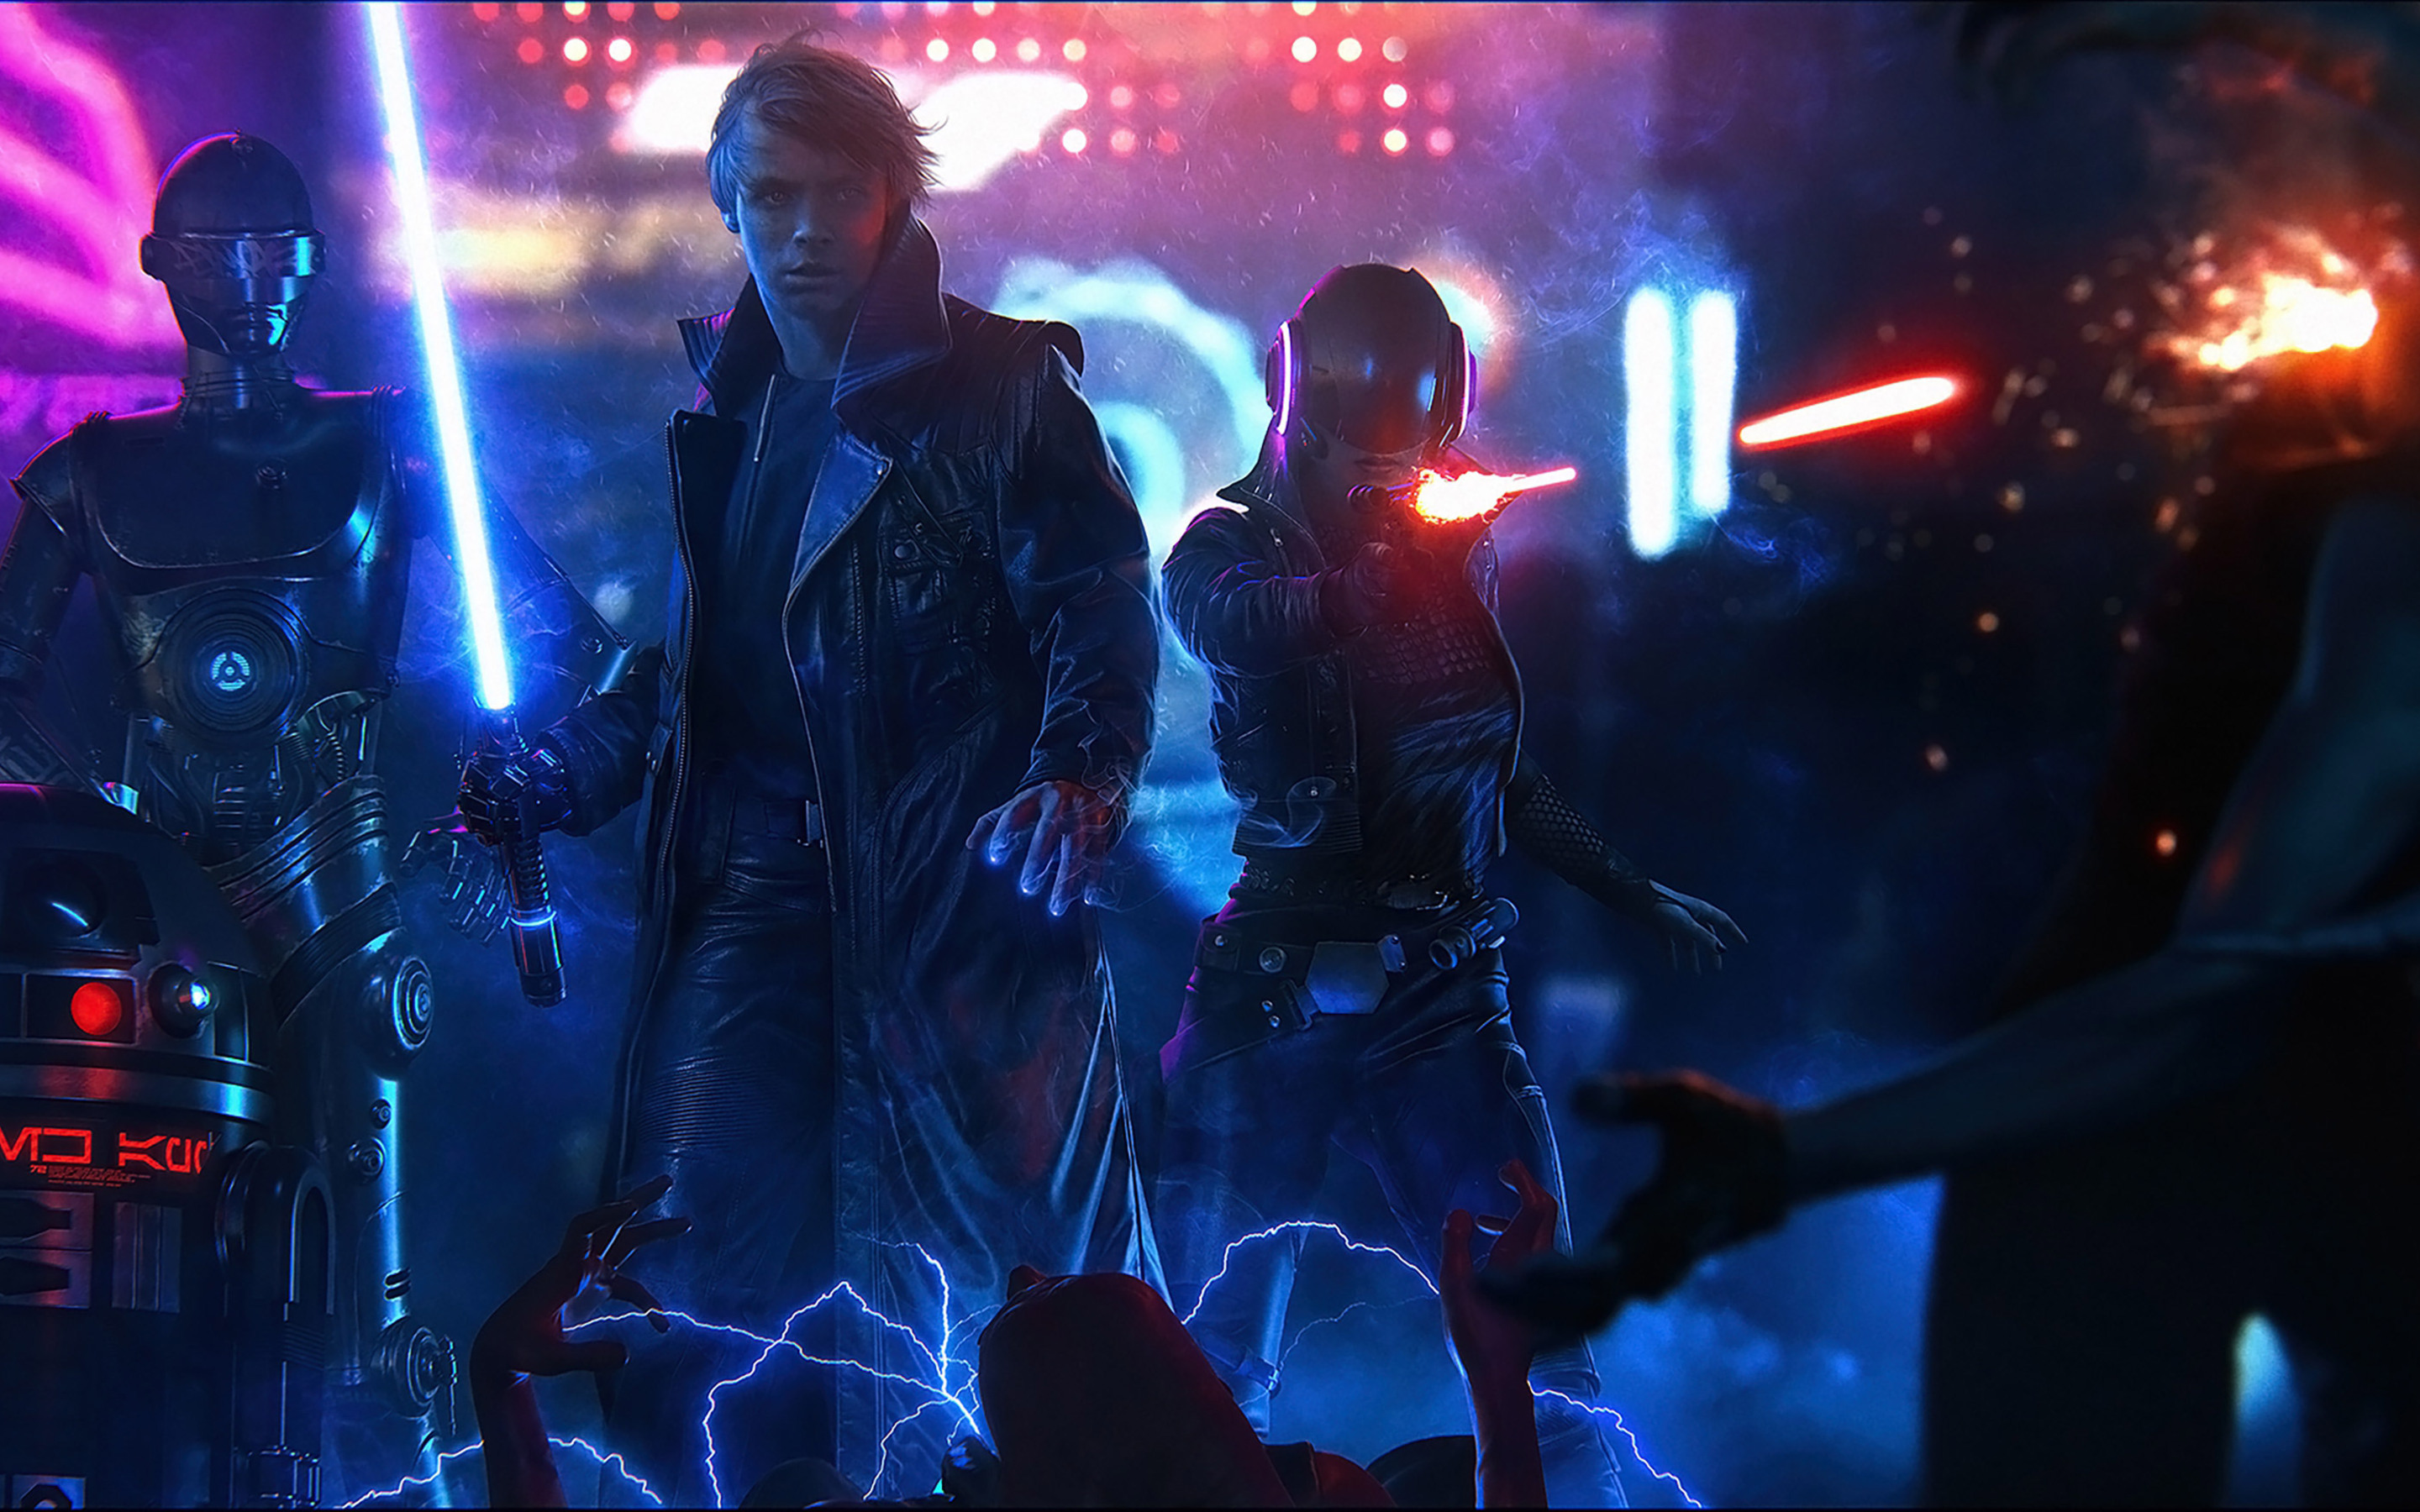 2880x1800 Star Wars Cyberpunk Macbook Pro Retina Hd 4k Wallpapers Images Backgrounds Photos And Pictures